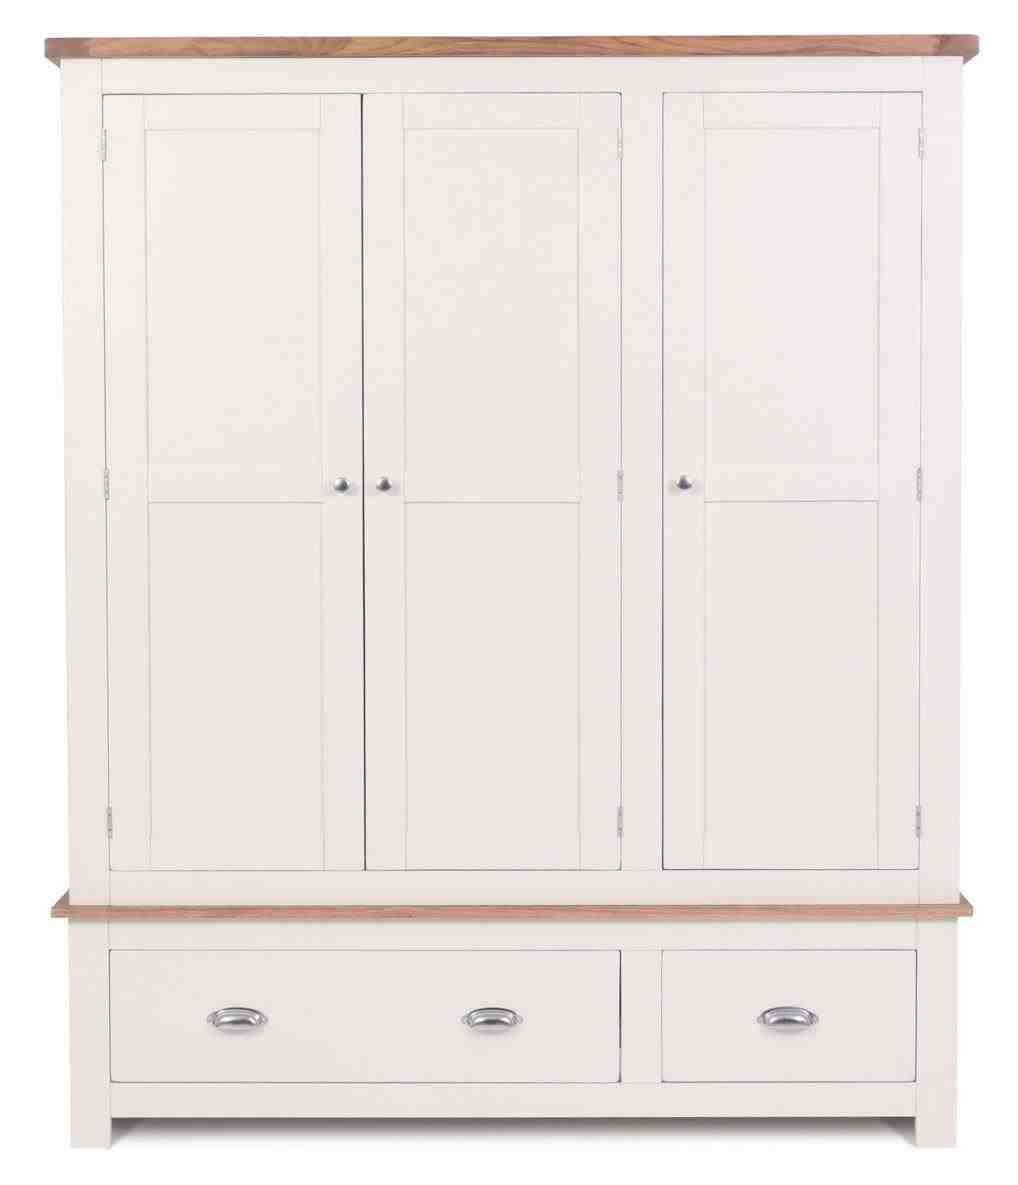 New post cheap wardrobe with drawers decors ideas pinterest